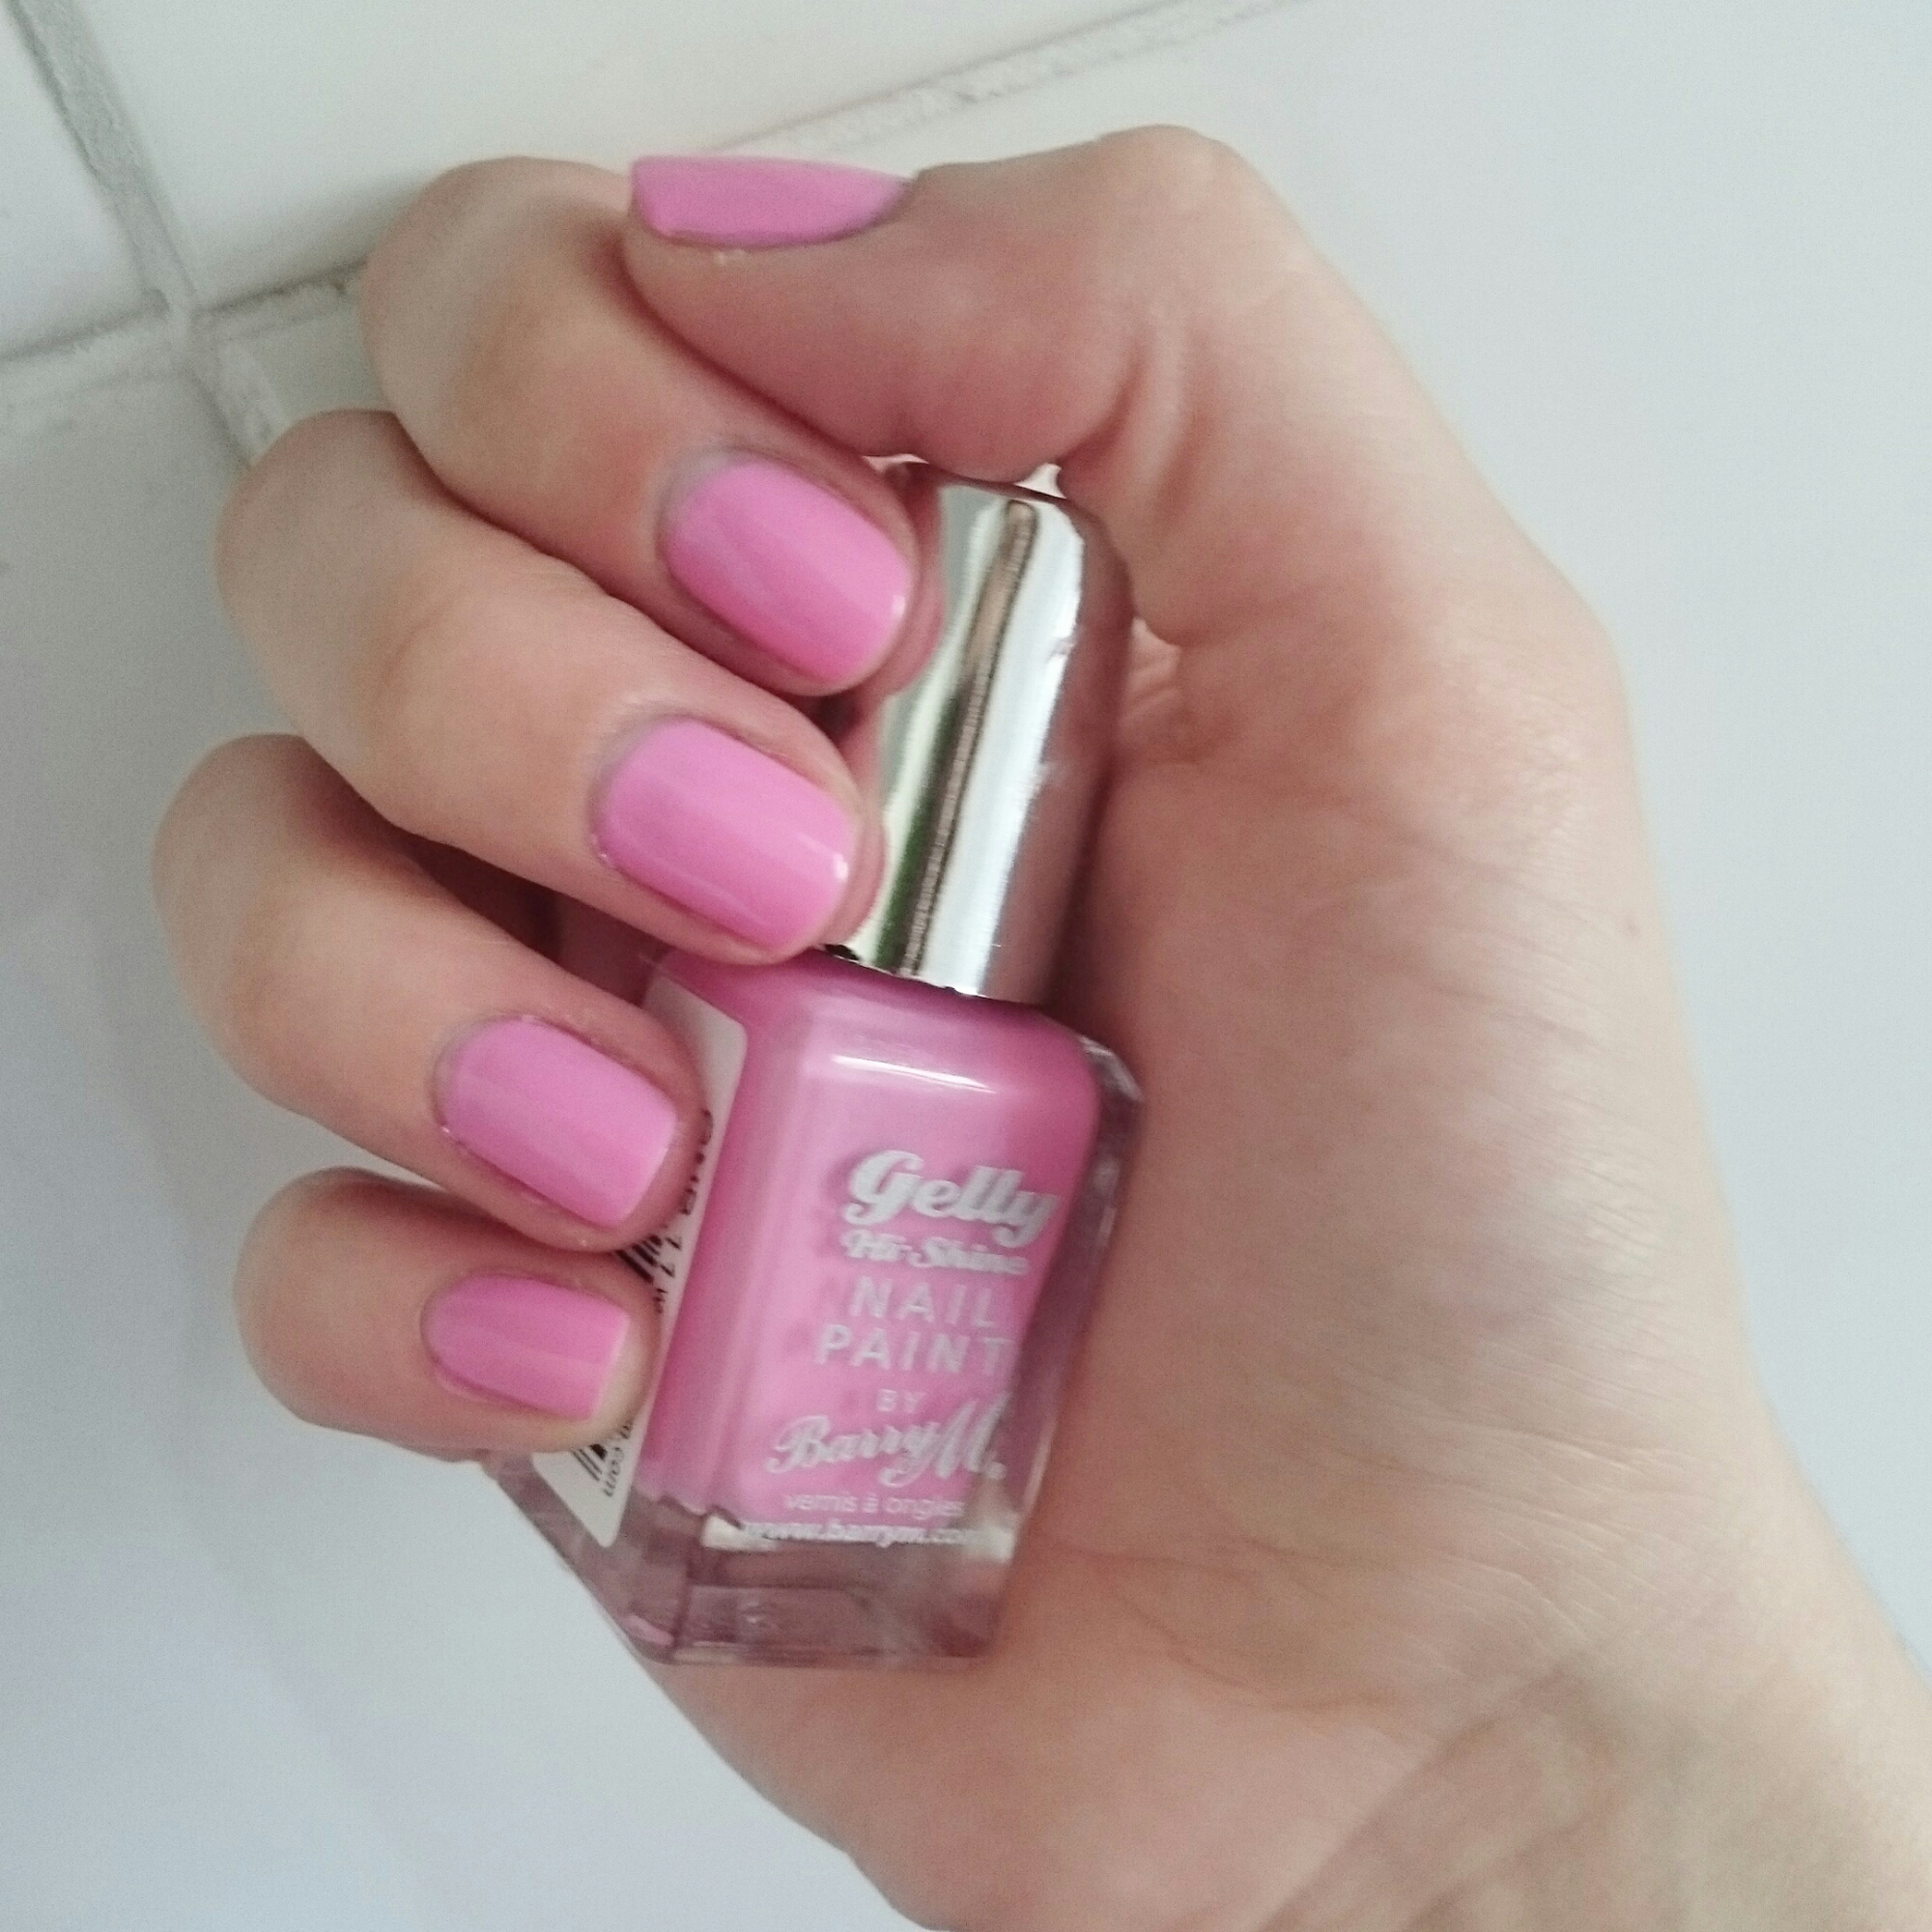 dragonfruit, nail polish, barryM,swatch